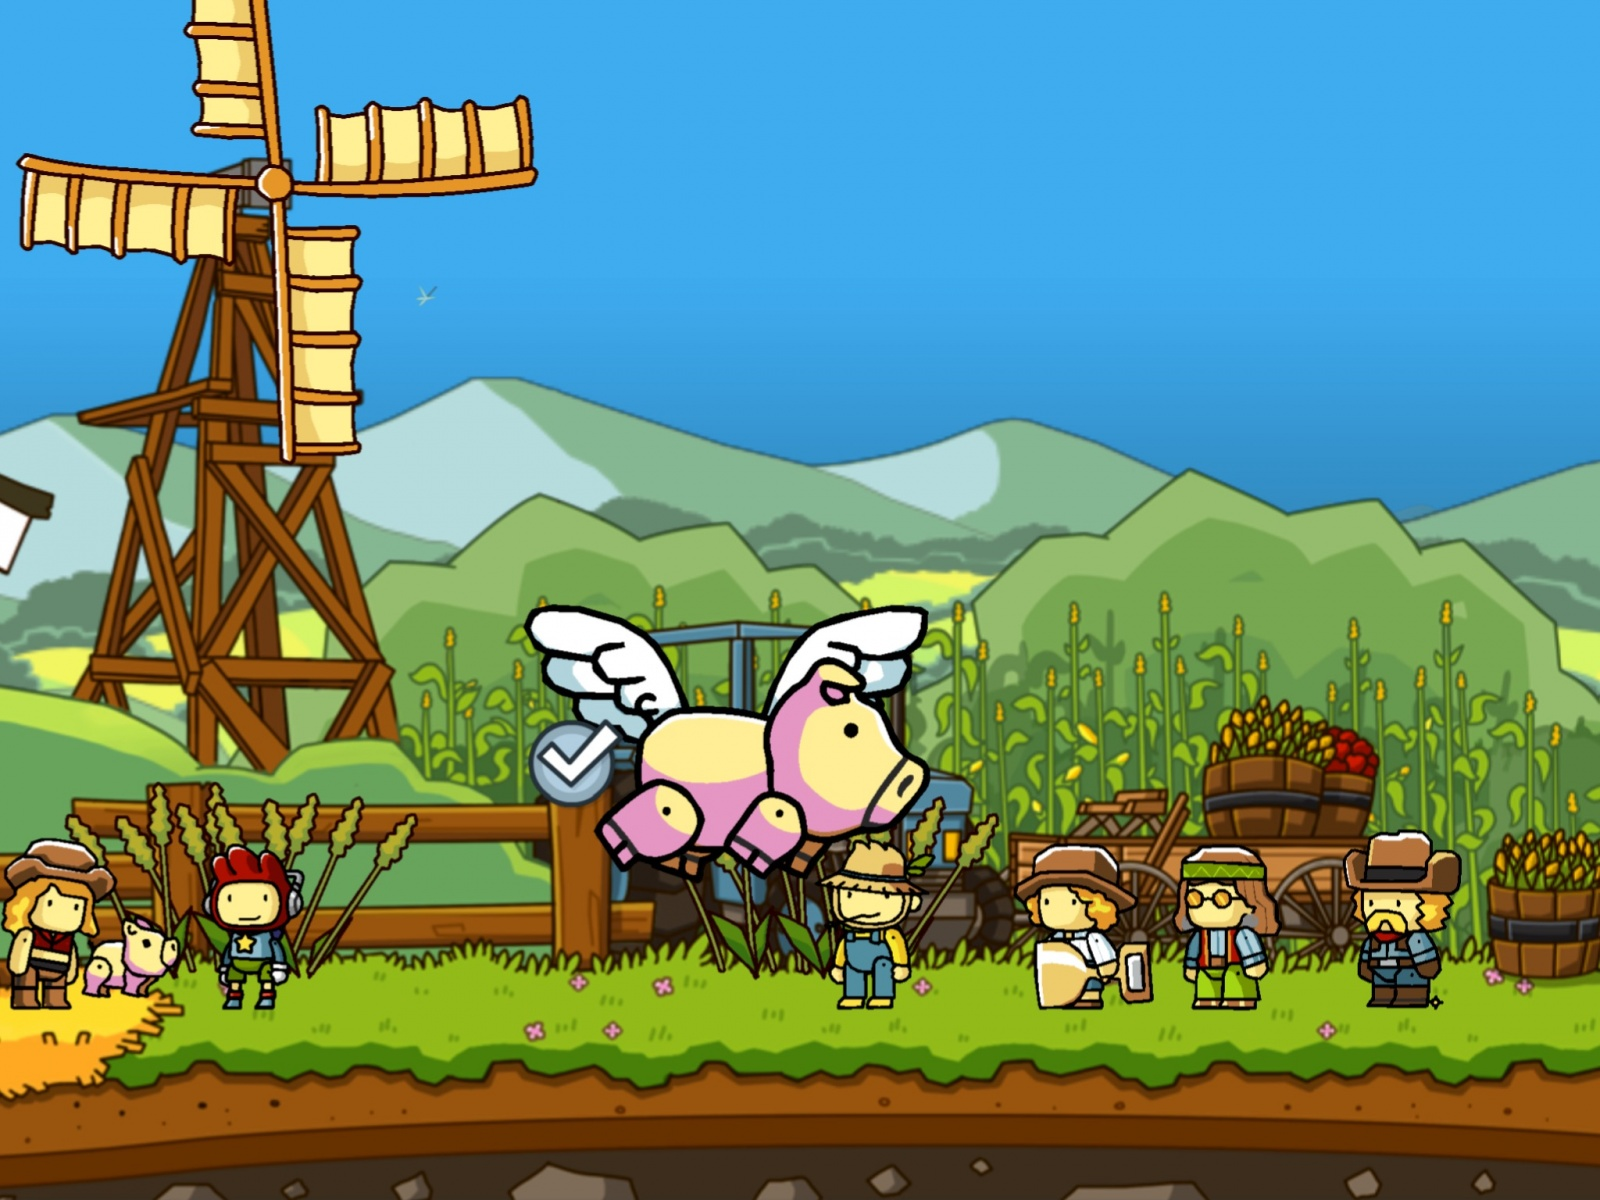 use-your-words-to-save-your-sister-in-scribblenauts-unlimited-image-cultofandroidcomwp-contentuploads201512when-pigs-fly-jpg